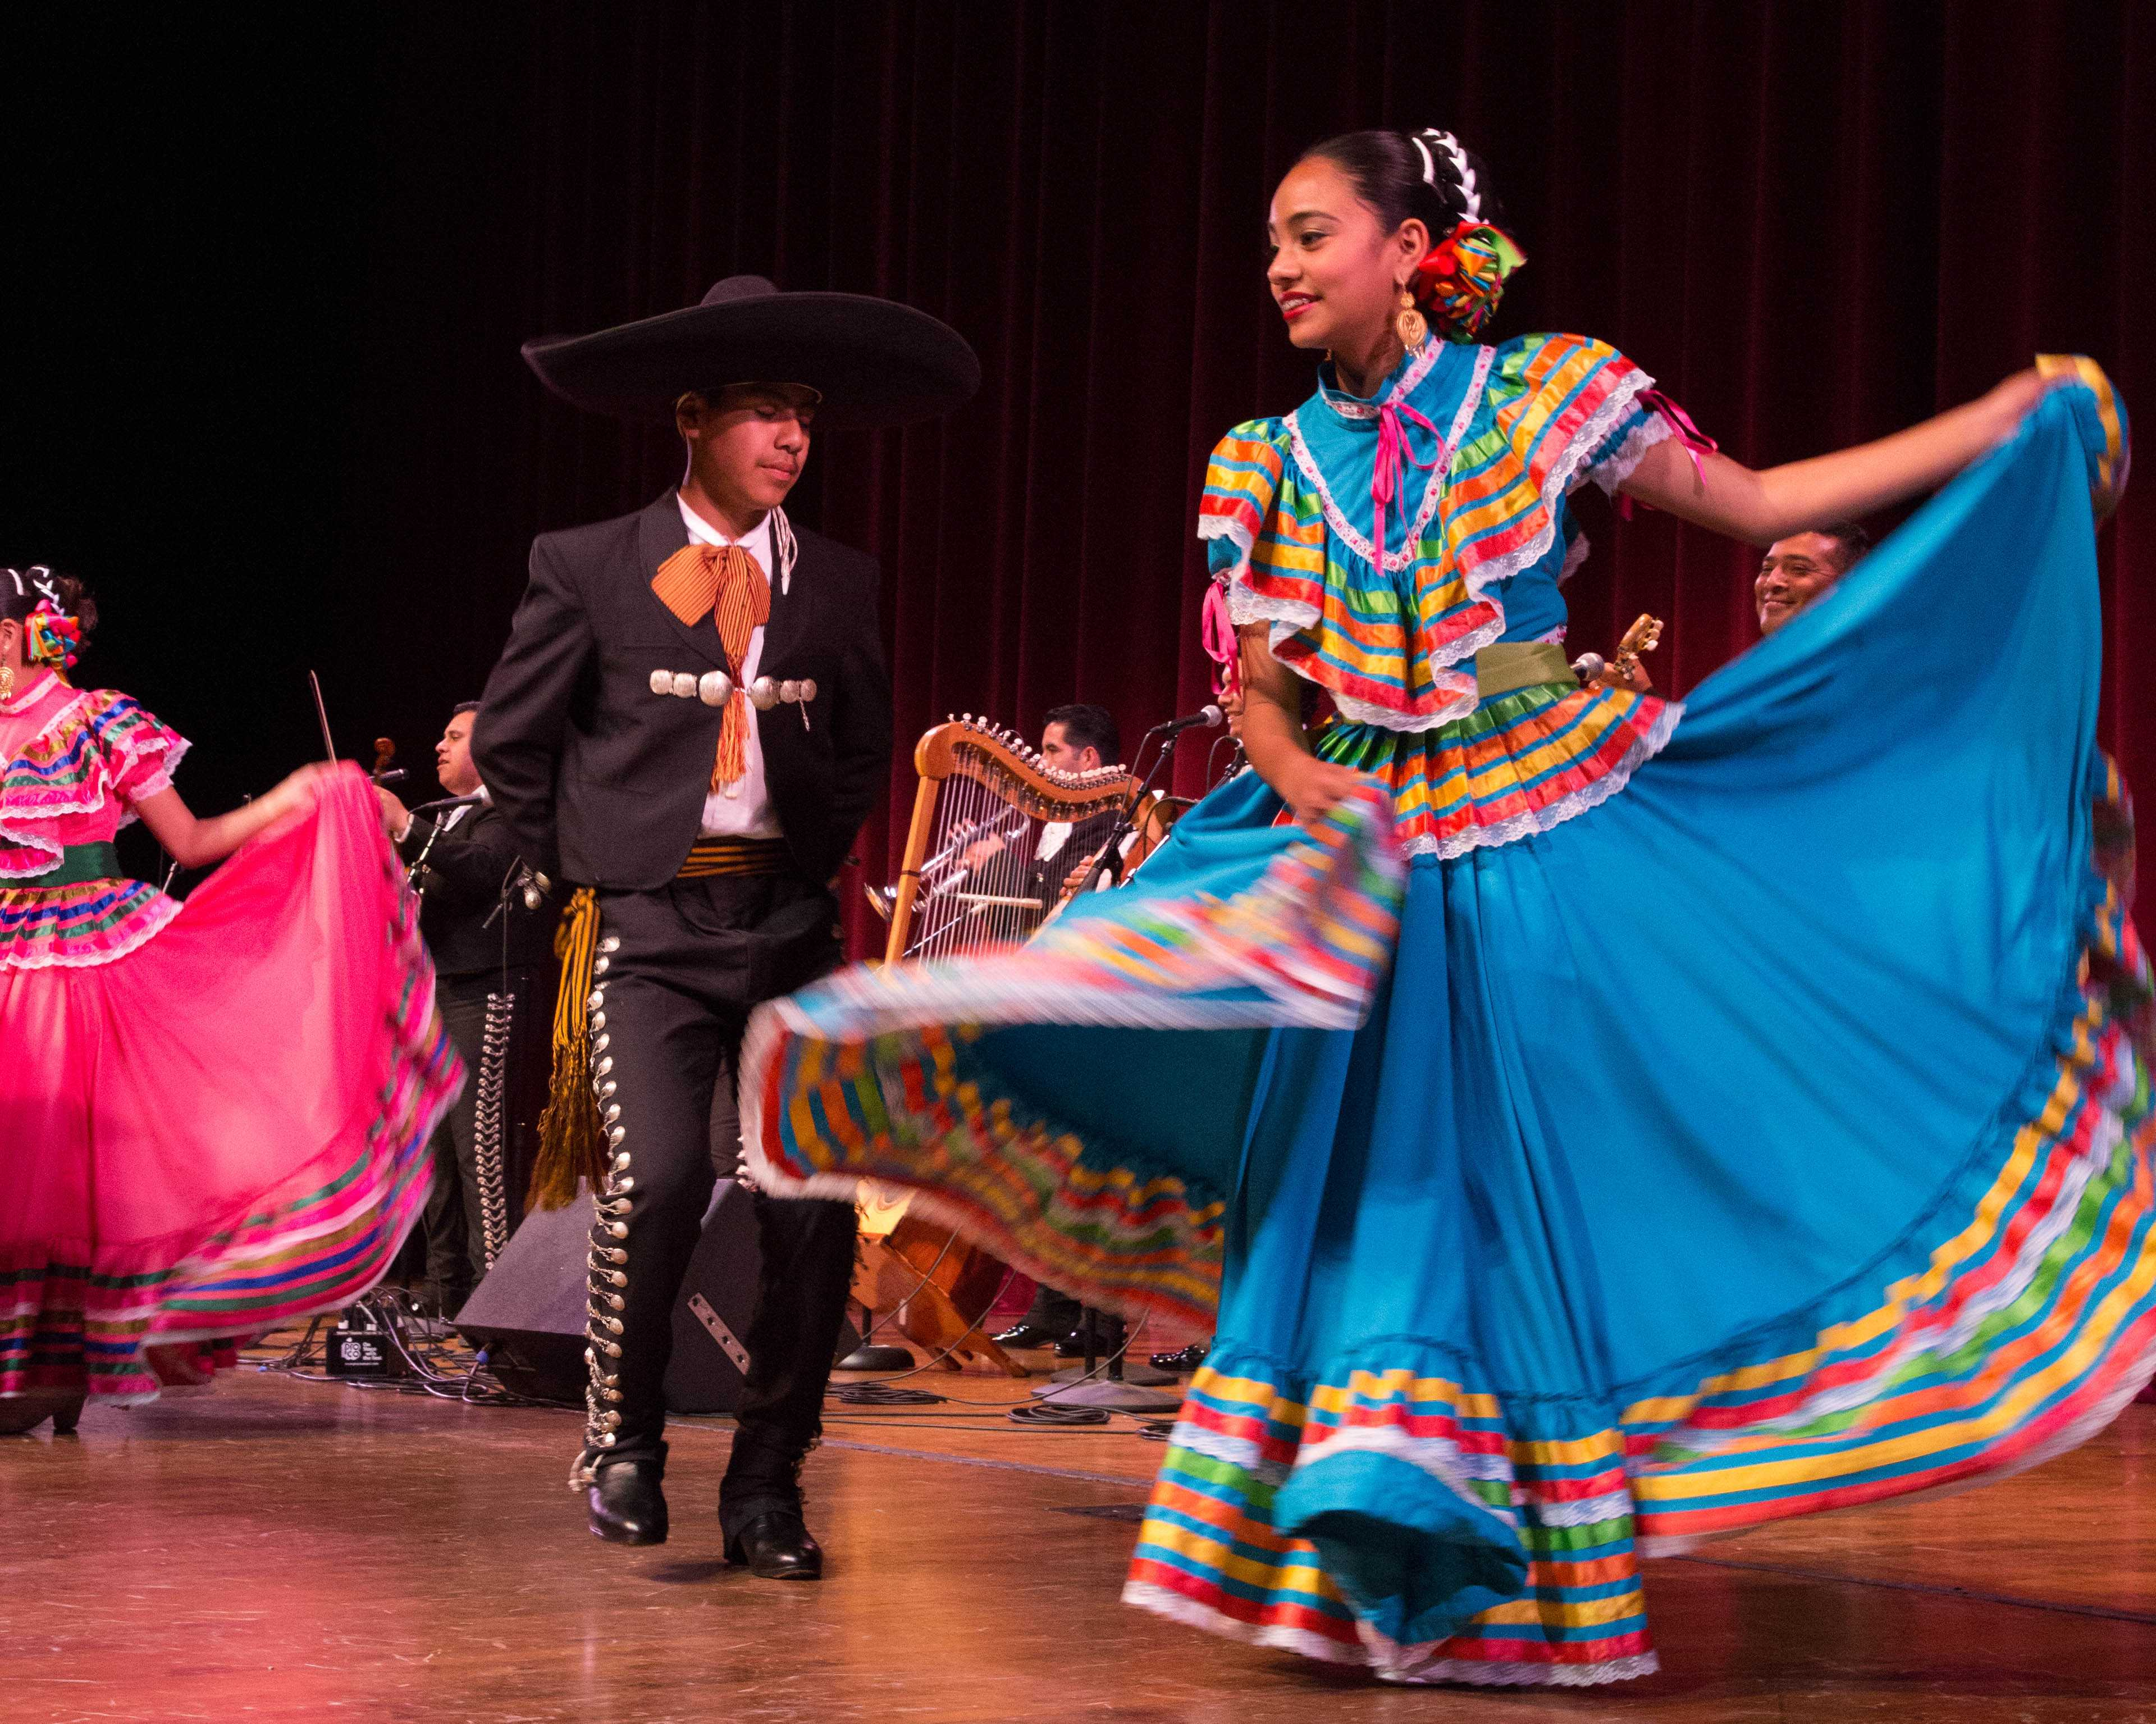 """La Fiesta"" comes to EC with Mariachi and other traditional dances"